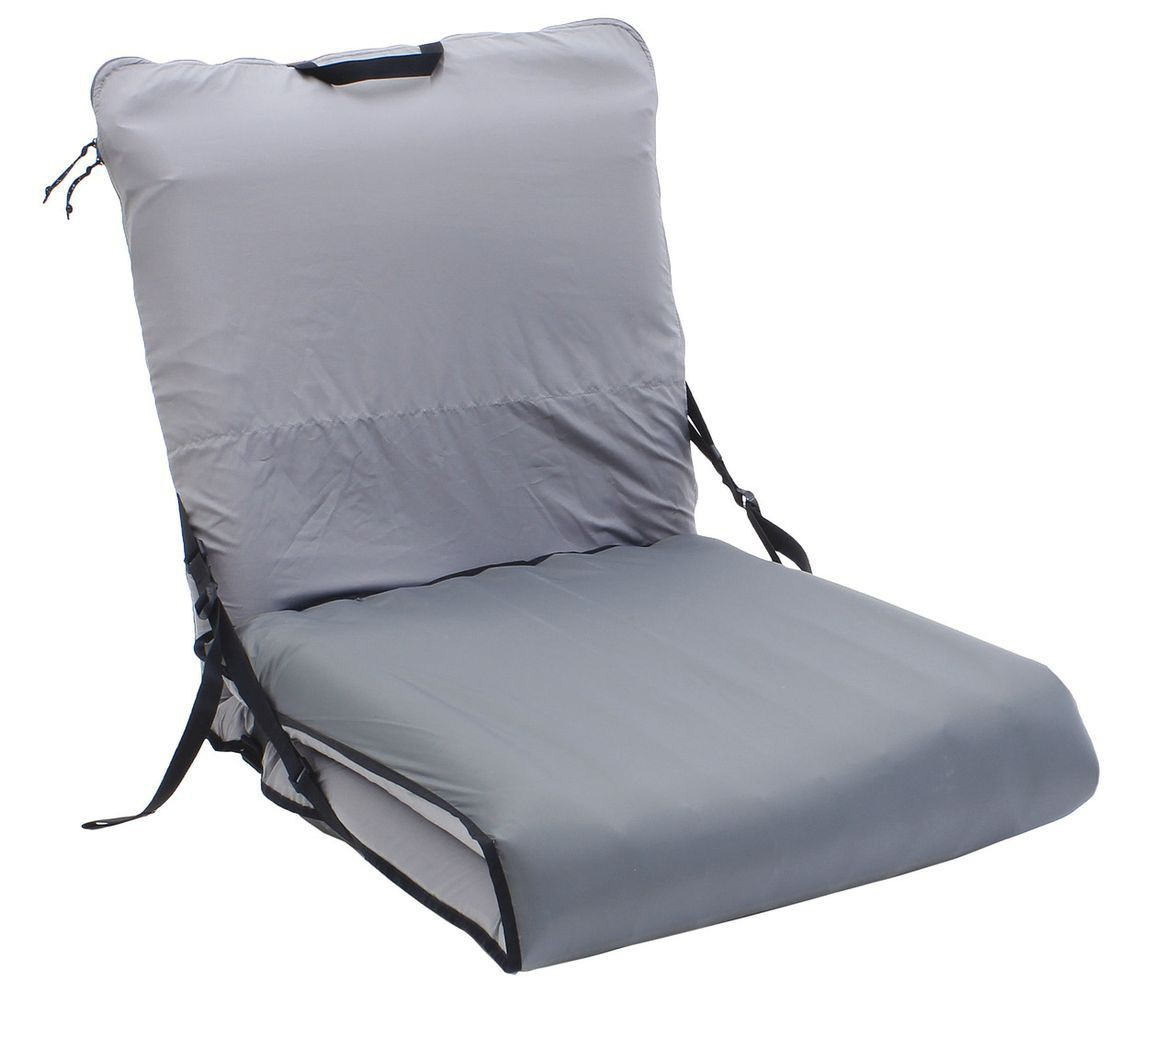 Exped chair kit fauteuil si ge chaise matelas for Housse matelas rangement